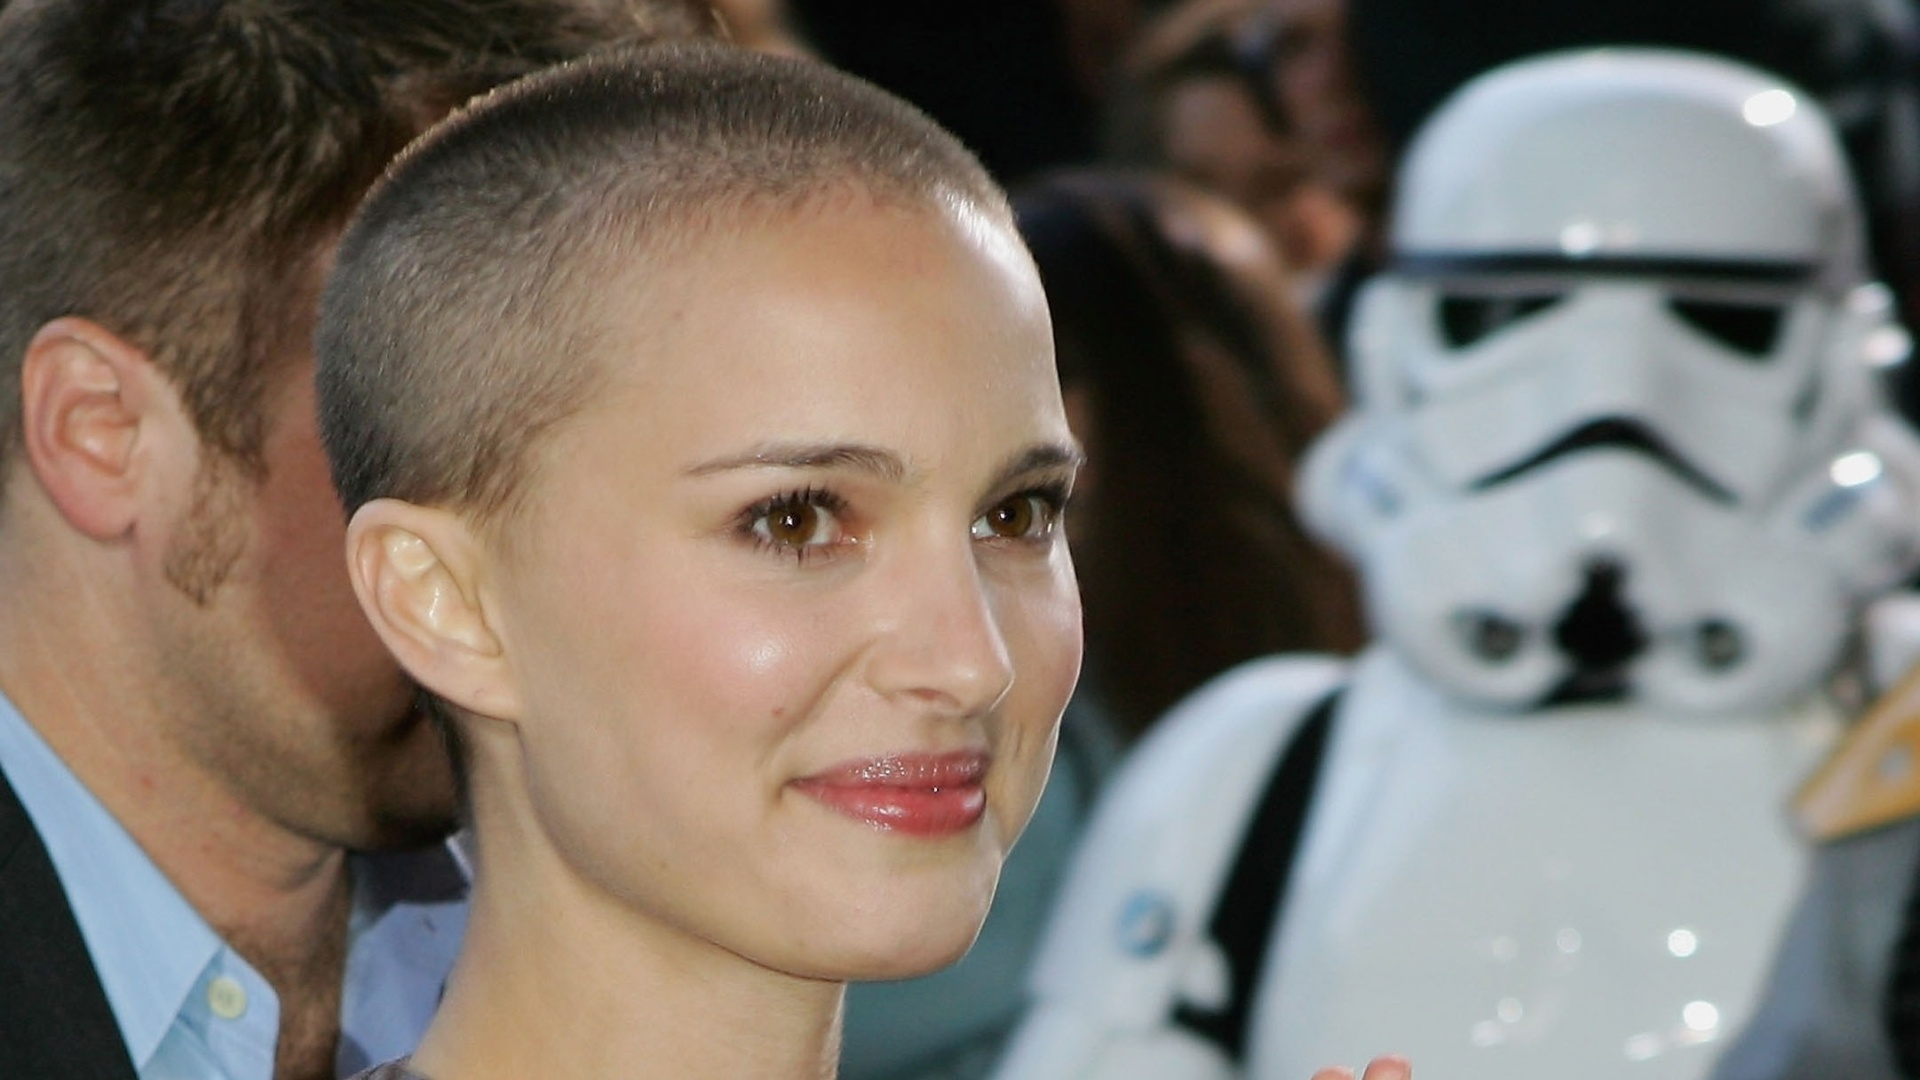 Natalie Portman raspou os cabelos para o filme 